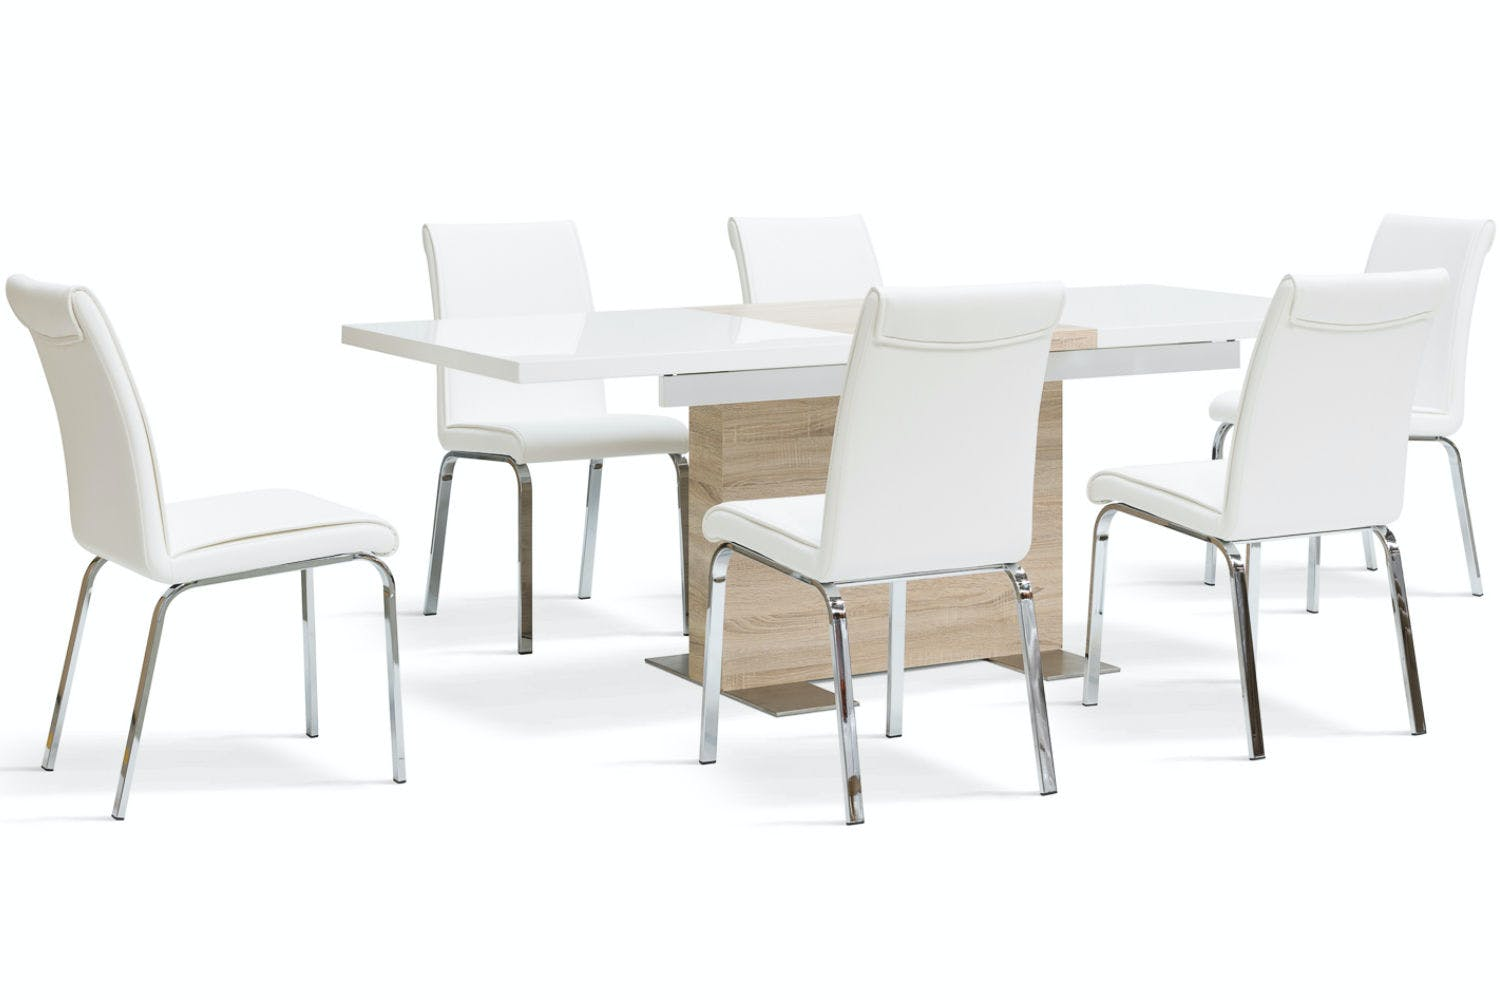 Lennox 7 Piece Dining Set Leonora Chairs H000012555 Computer Hard Drive Circuit Board Spiral Note Book 1295 White